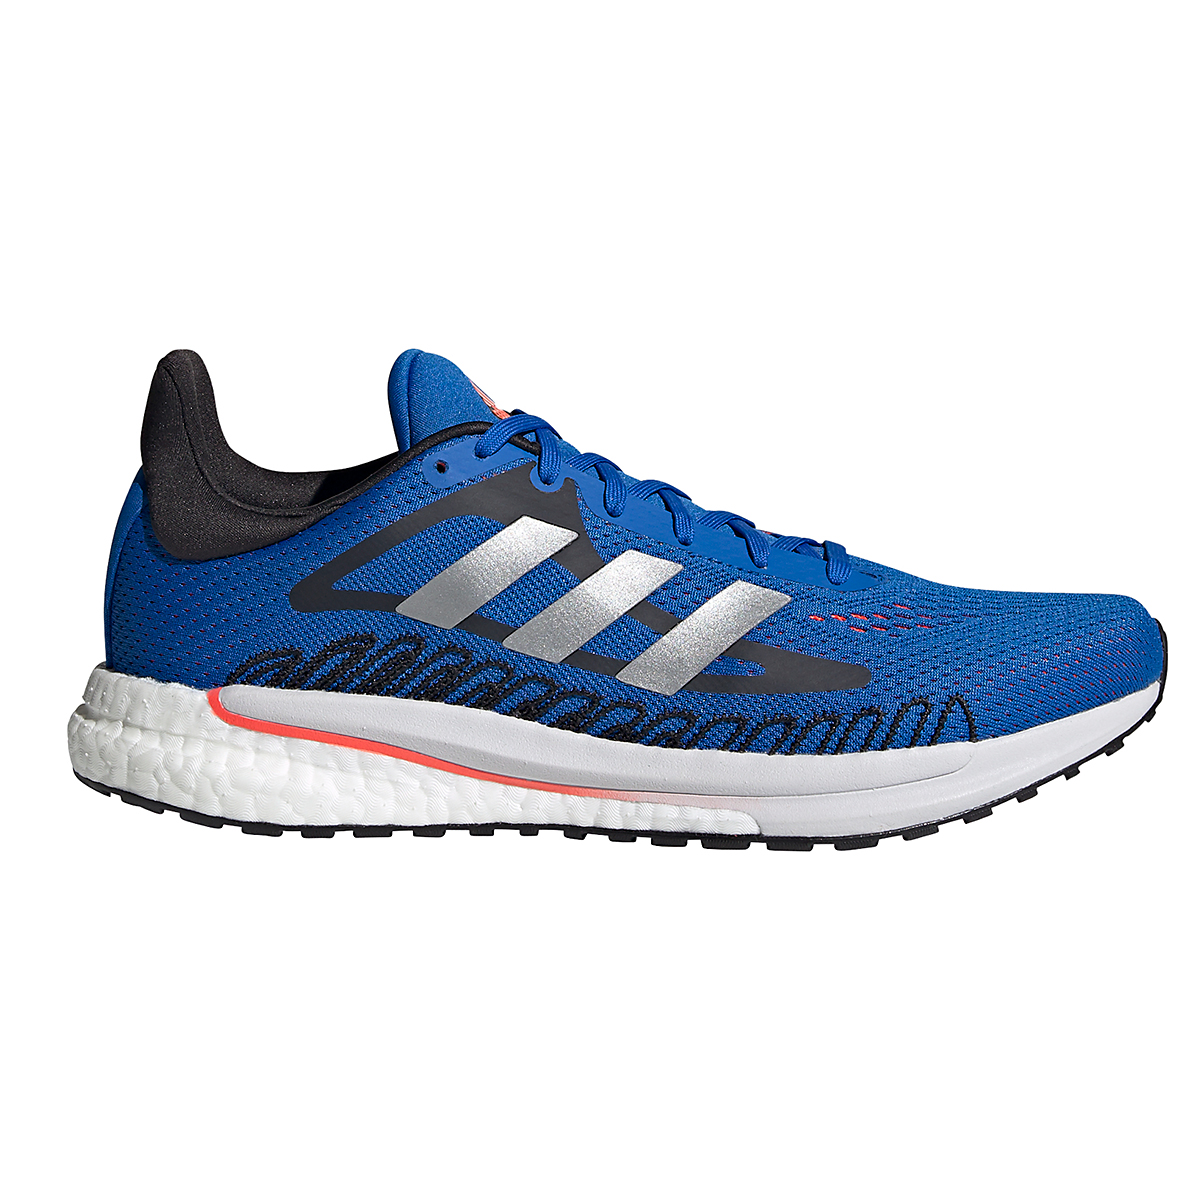 Men's Adidas Solarglide 3 Running Shoe - Color: Football Blue/Silver Metallic/Solar Red - Size: 6.5 - Width: Regular, Football Blue/Silver Metallic/Solar Red, large, image 1